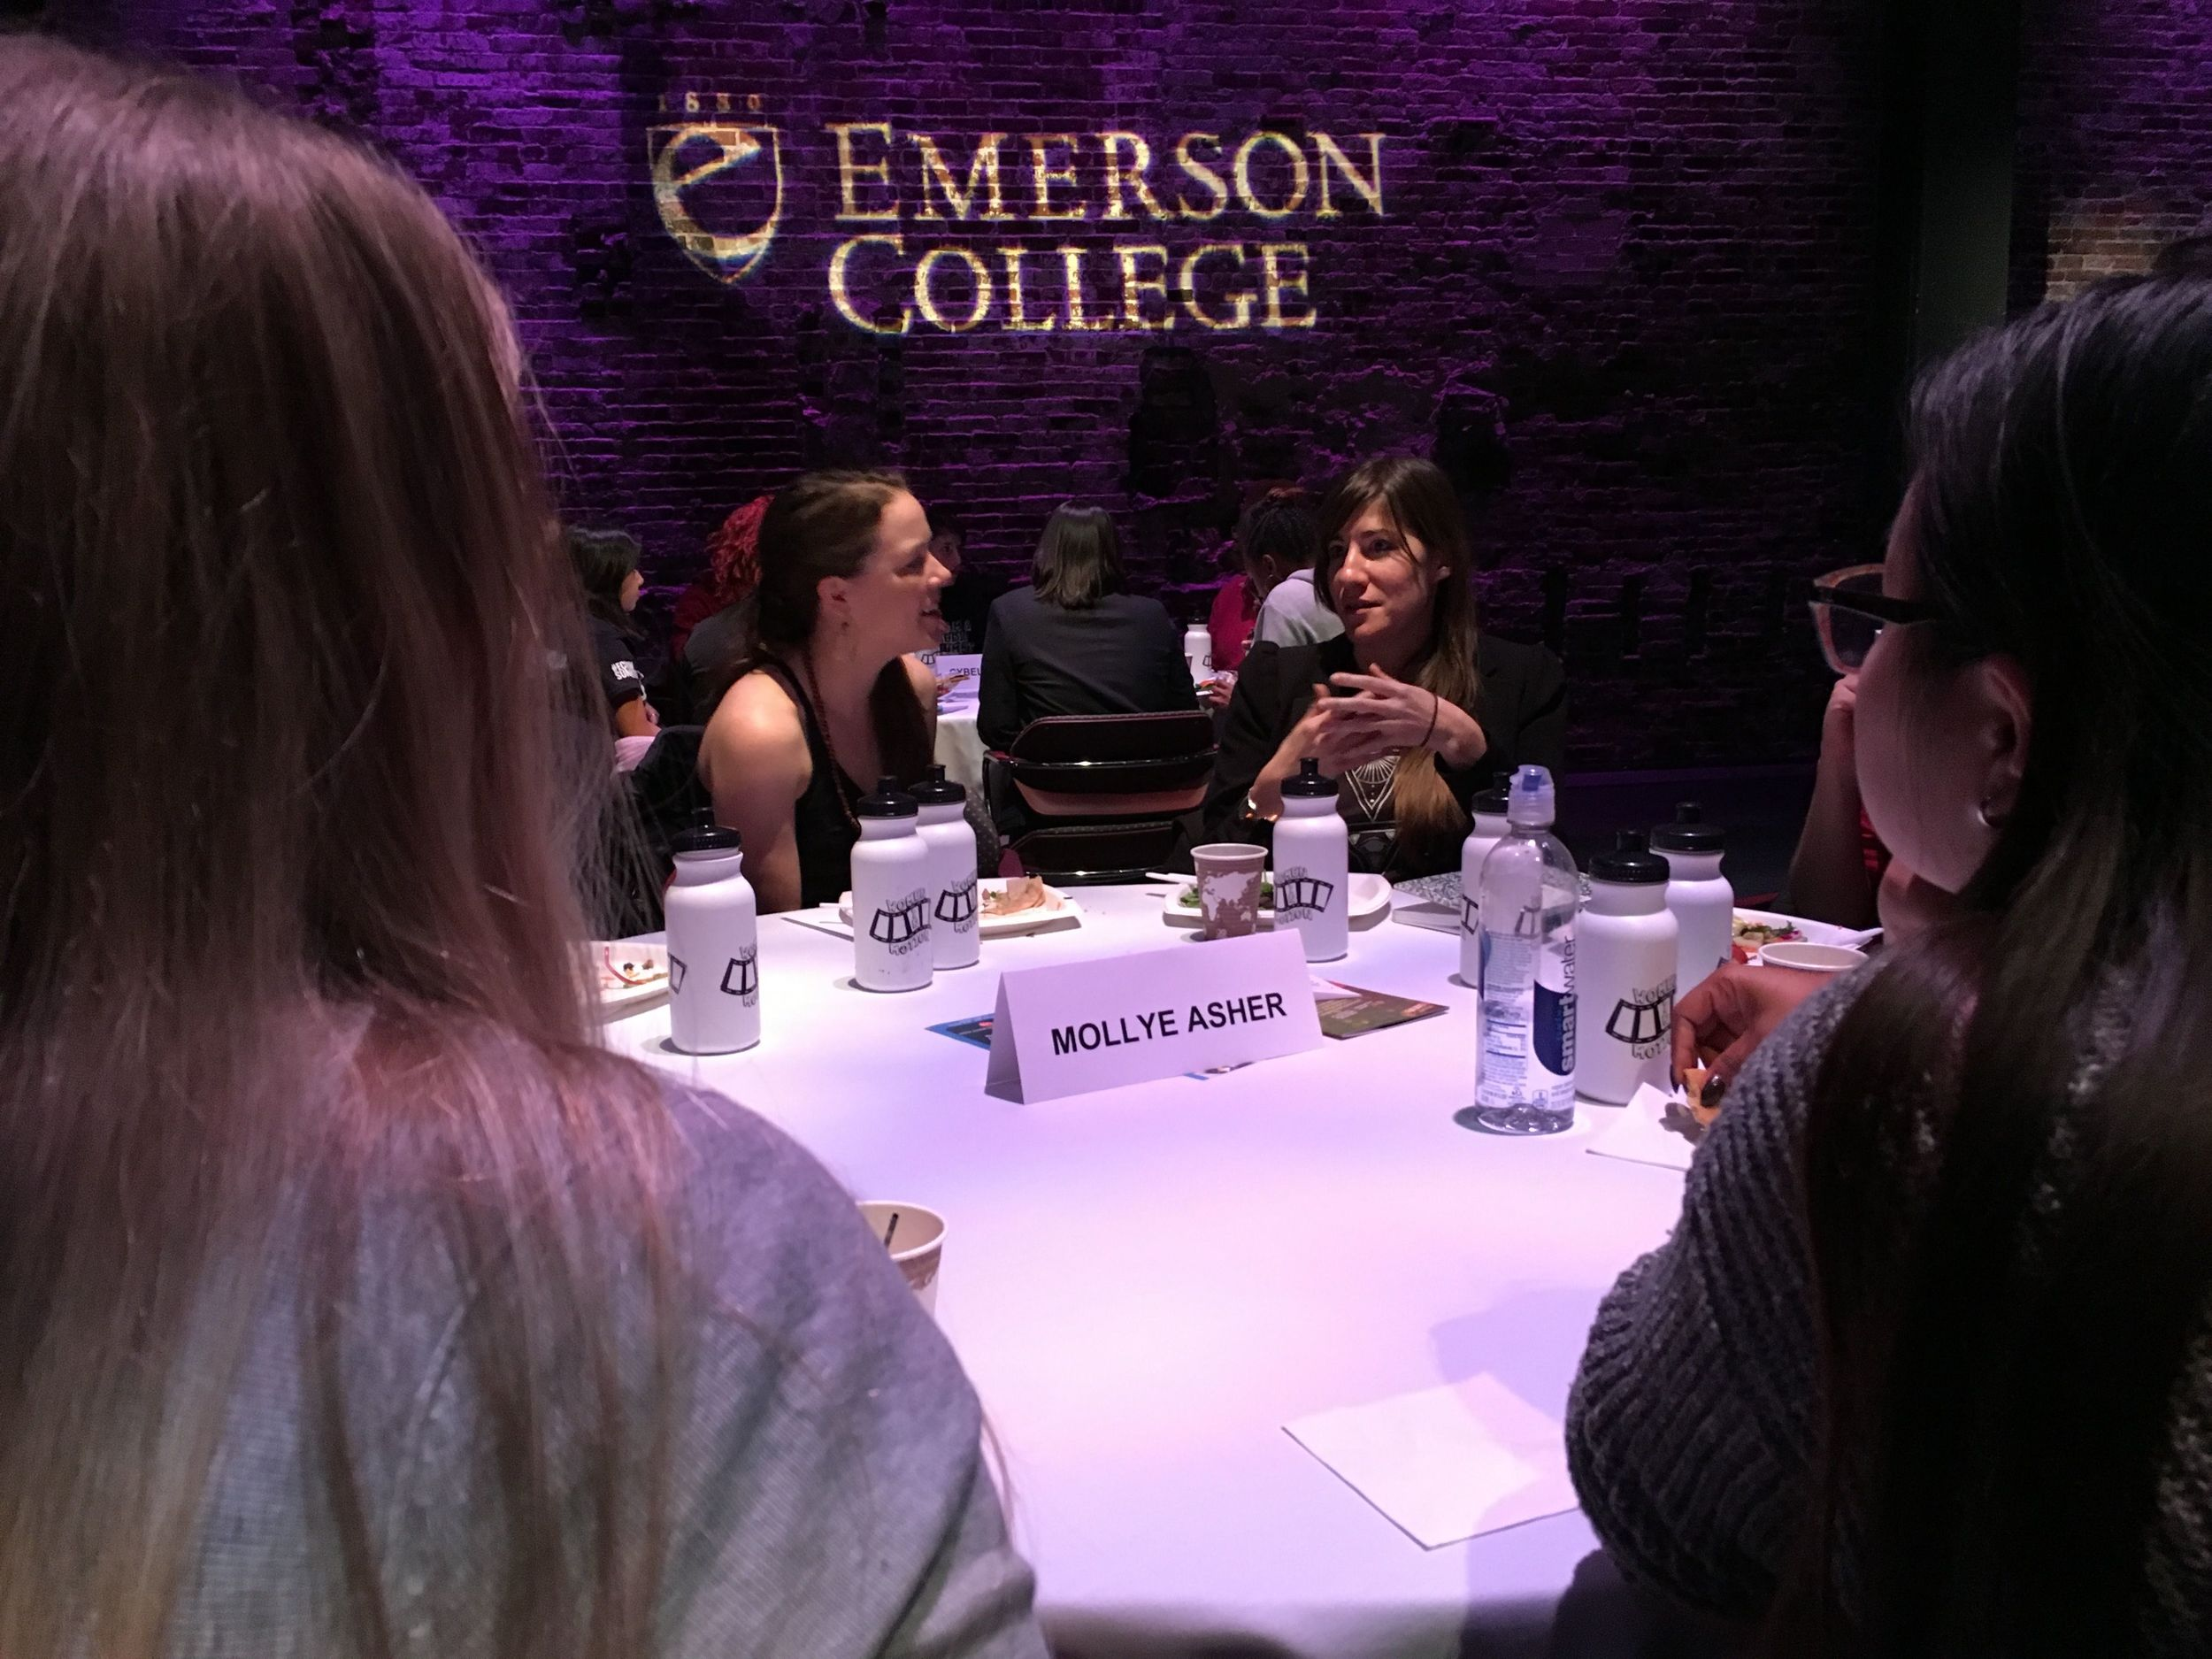 Producer Mollye Asher (r)with Emerson College students.